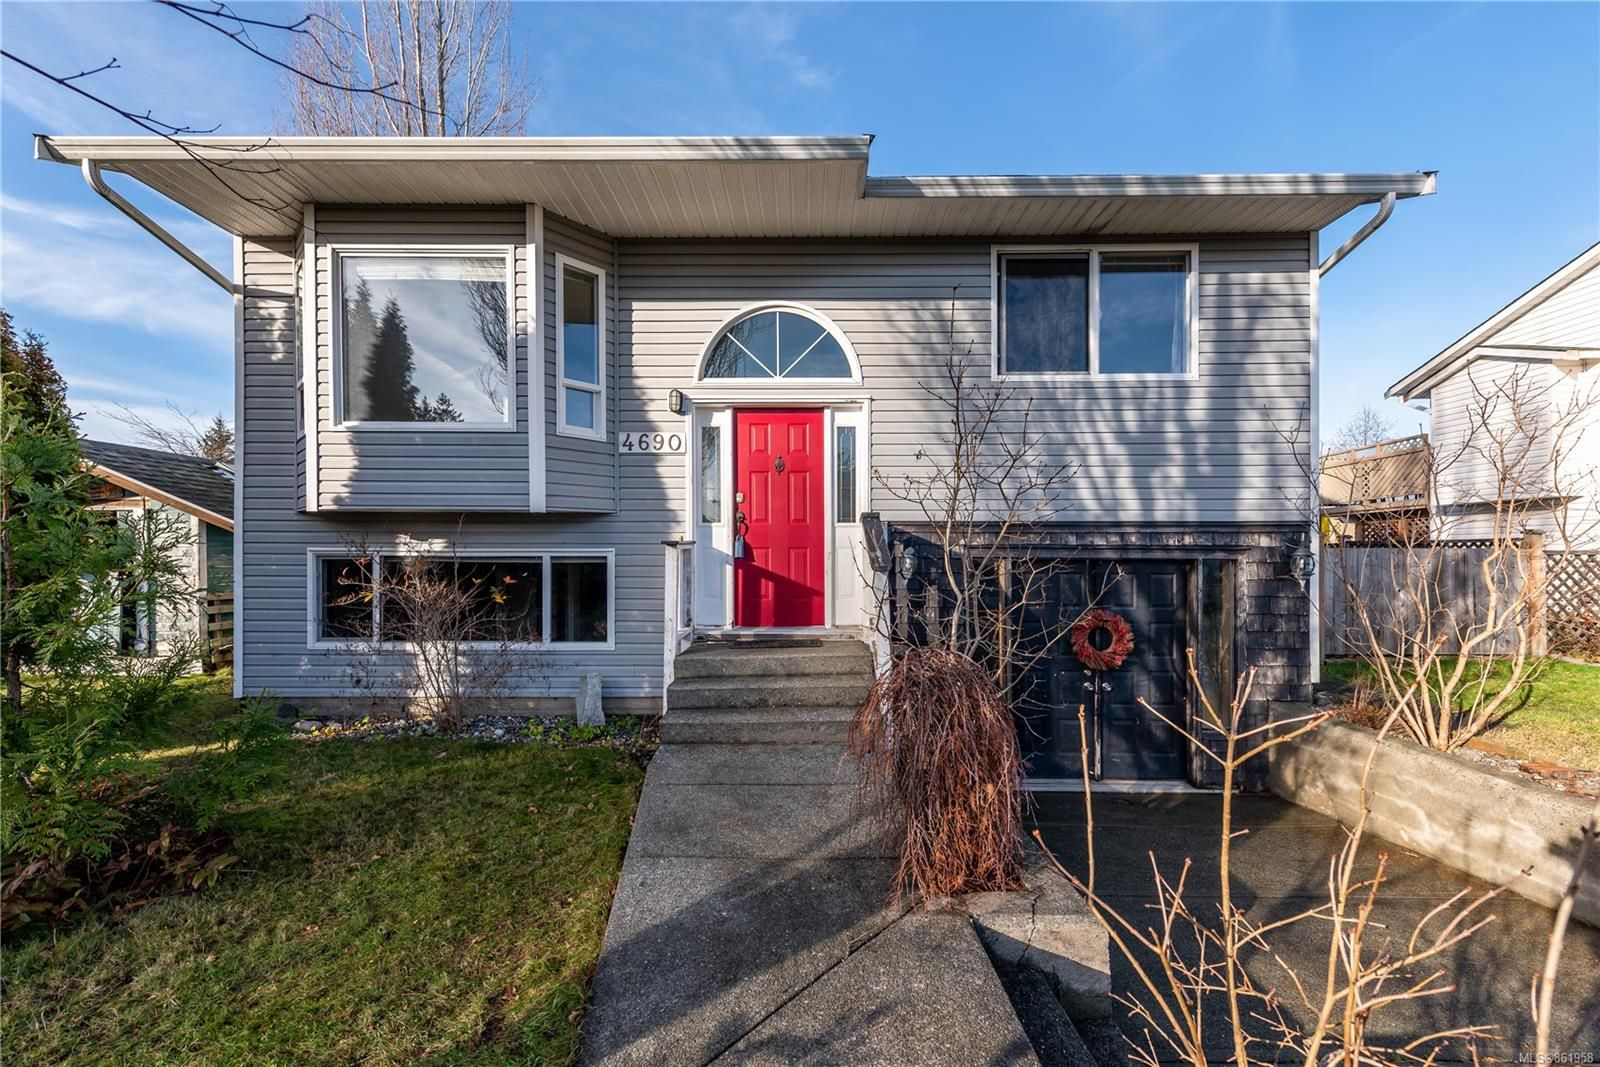 Main Photo: 4690 Cruickshank Ave in : CV Courtenay East House for sale (Comox Valley)  : MLS®# 861958